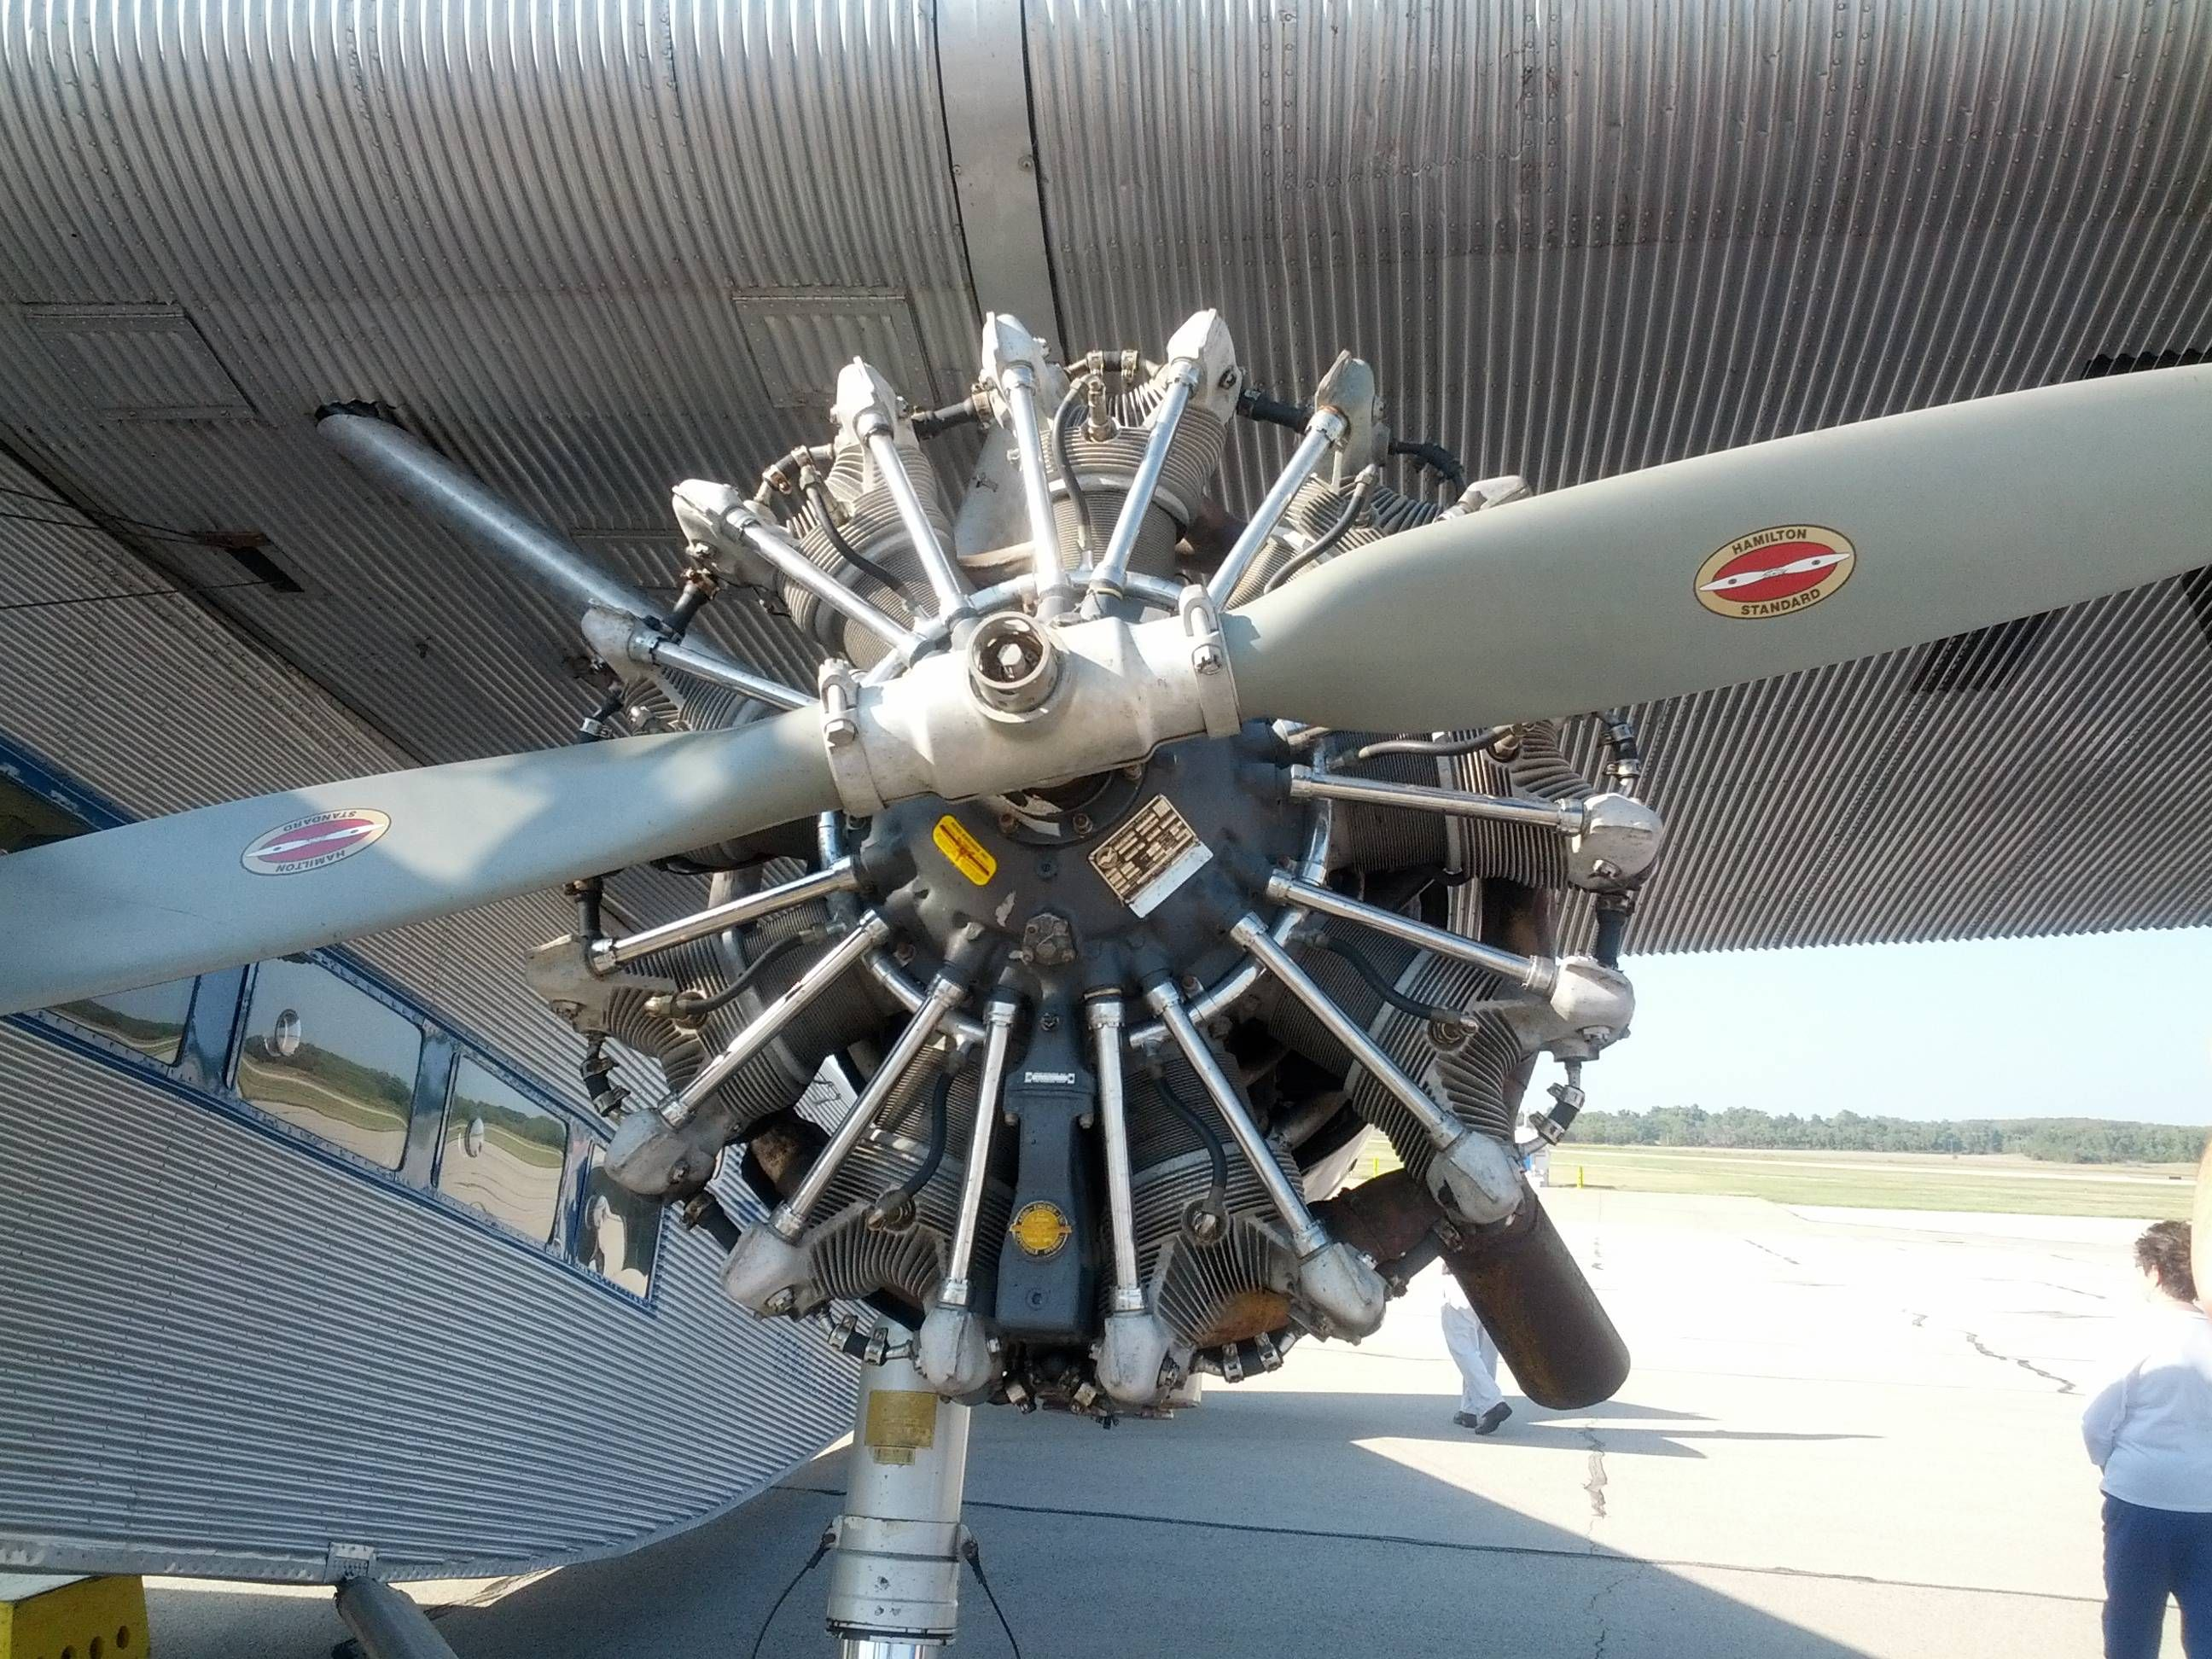 Pratt & Whitney Wasp radial piston engine from a 1929 Ford